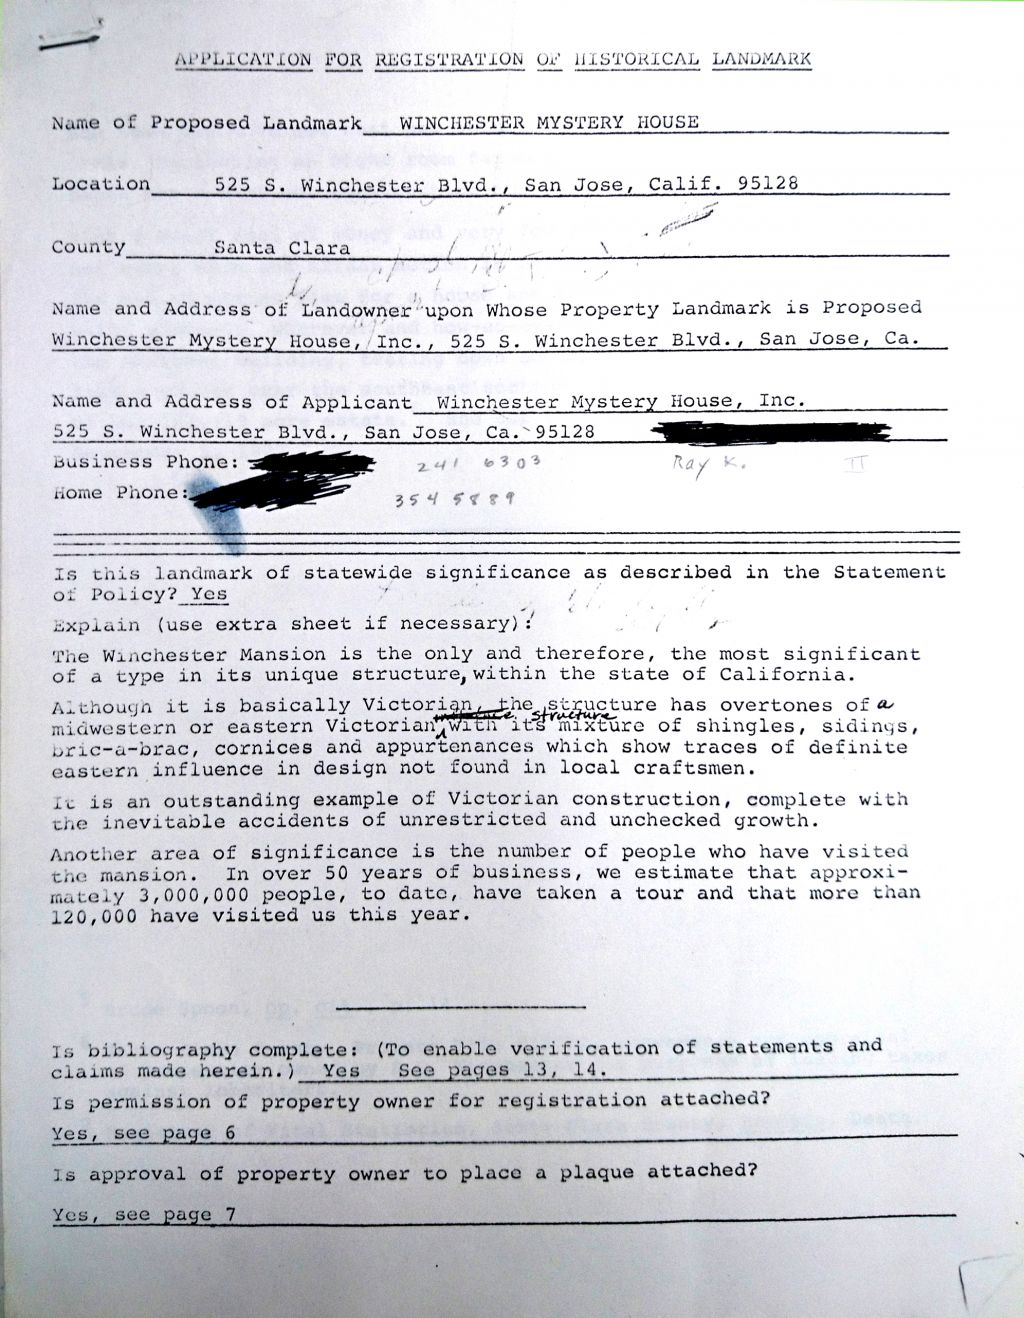 Winchester Mystery House Application for Registration as Historical Landmark in 1974 (source: Anne Garner Papers, History San Jose)